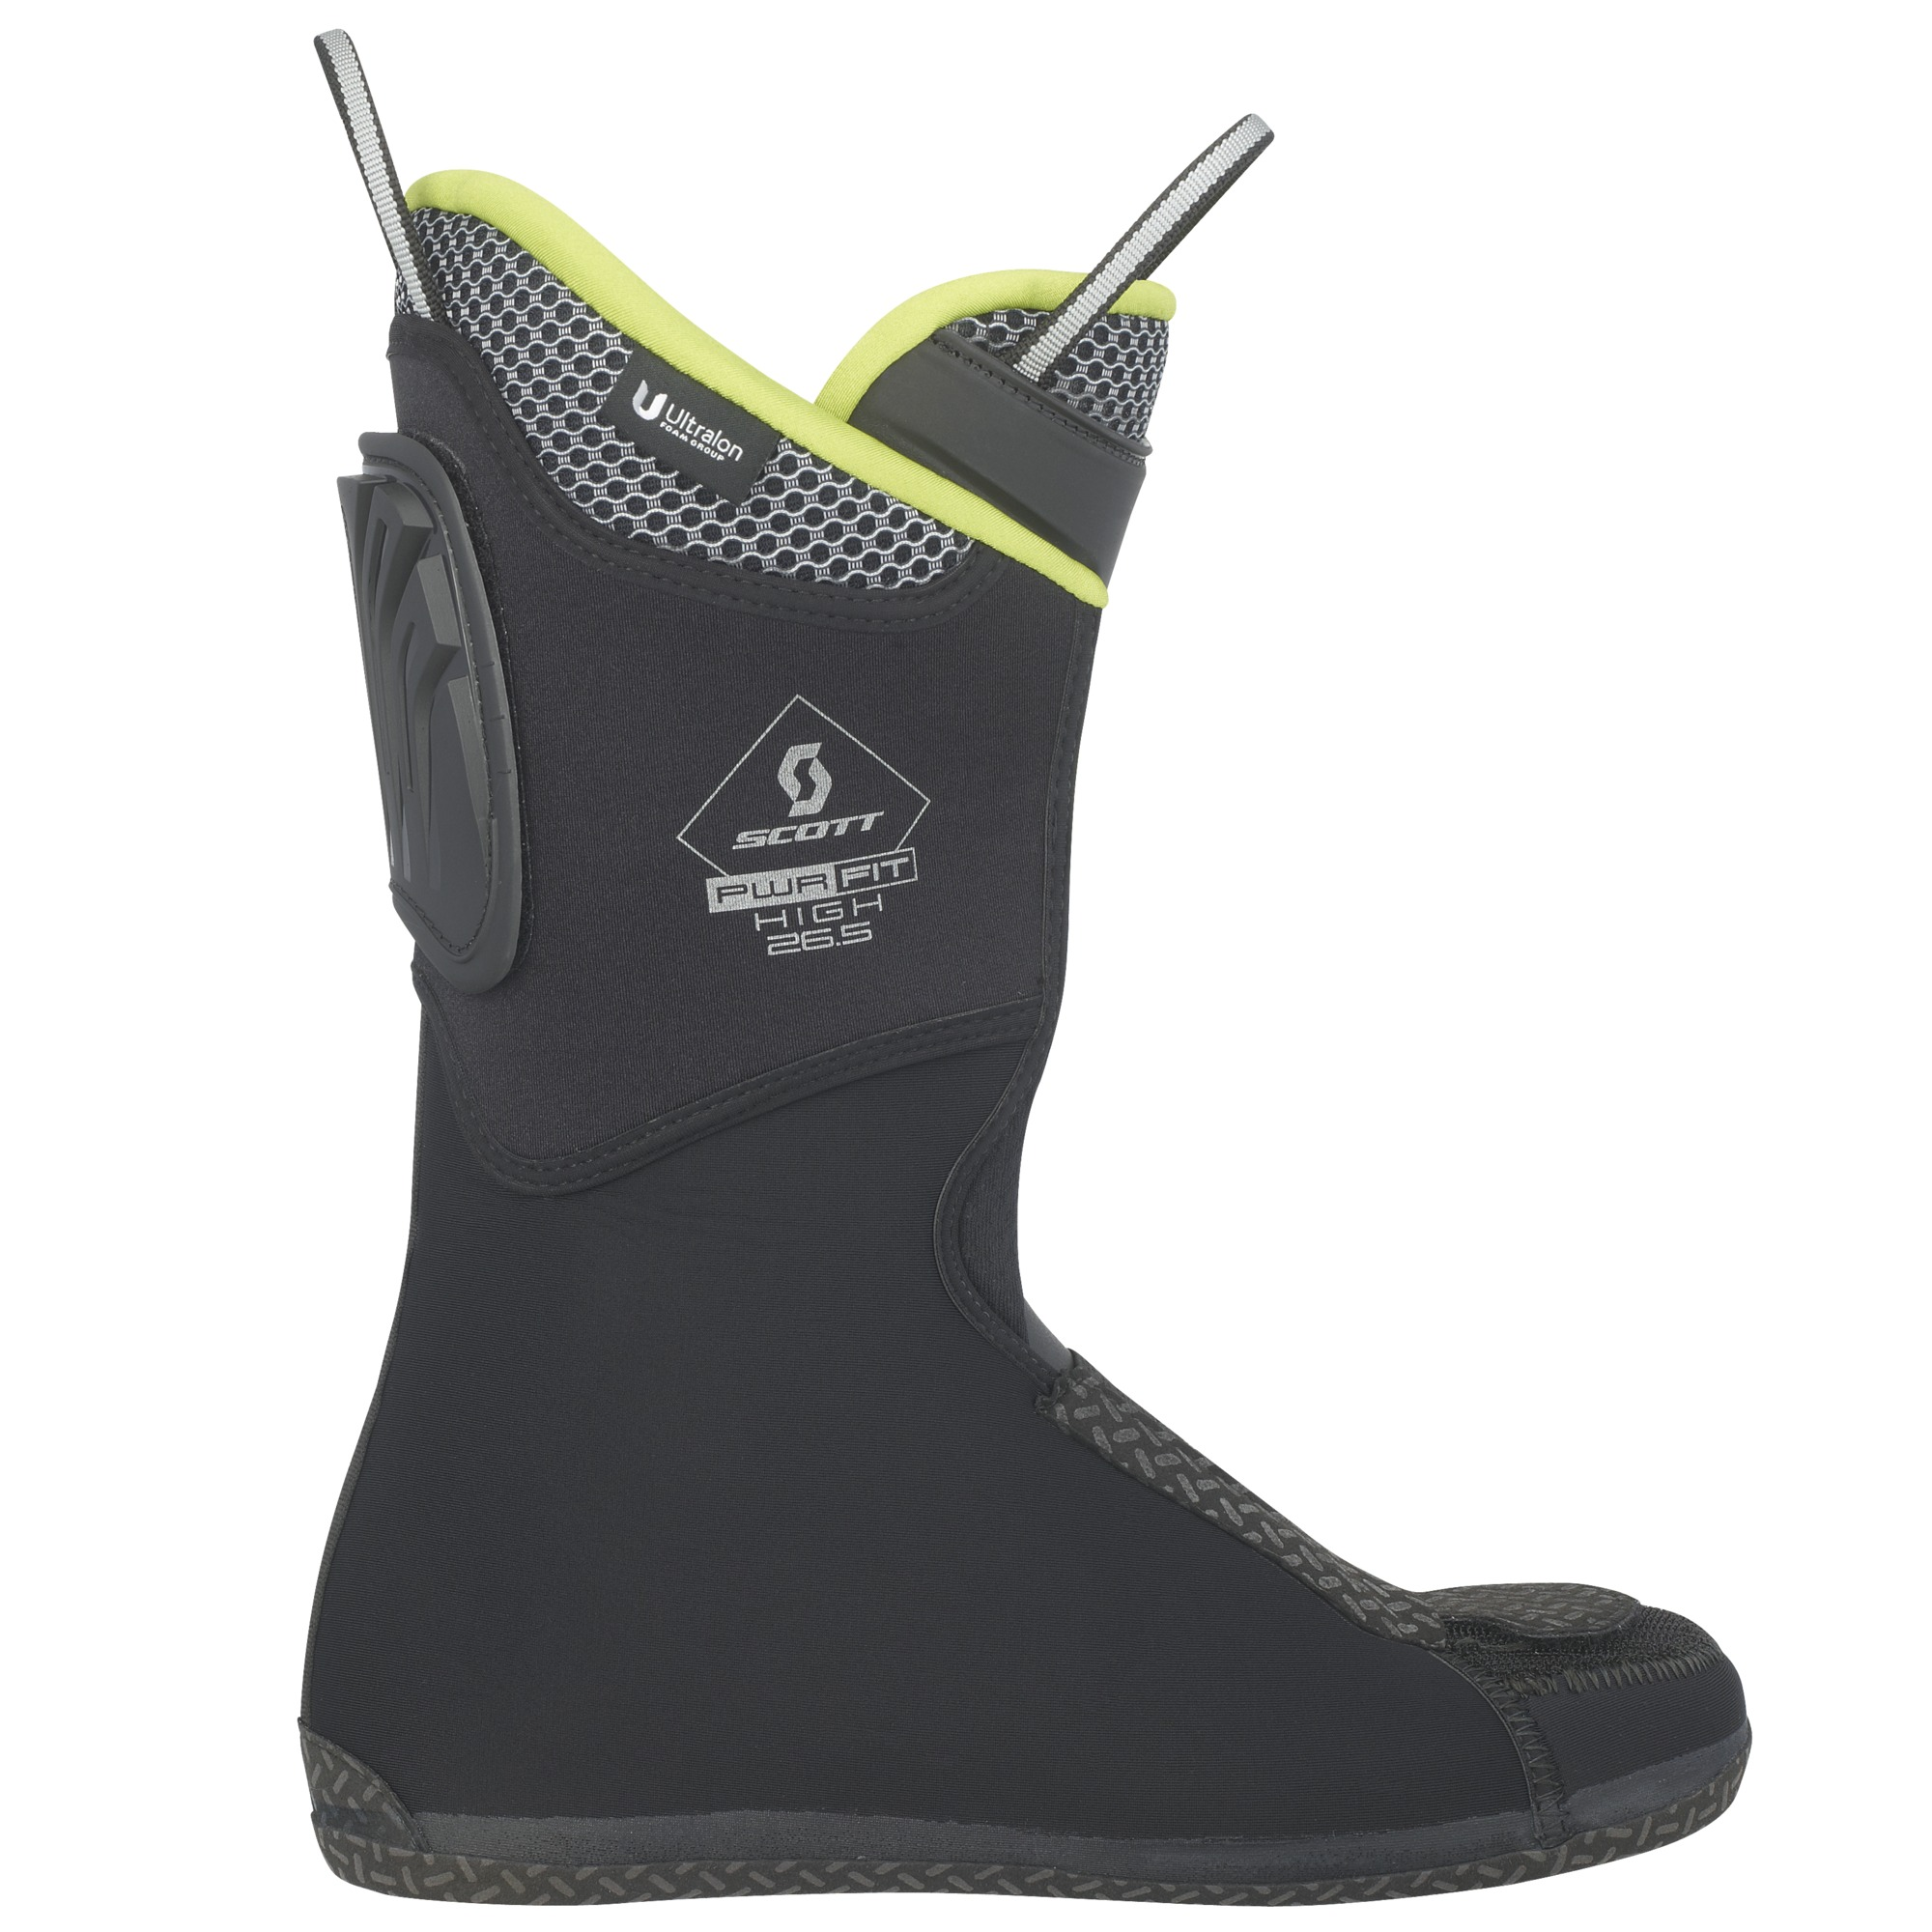 SCOTT G2 120 Powerfit Ski Boot